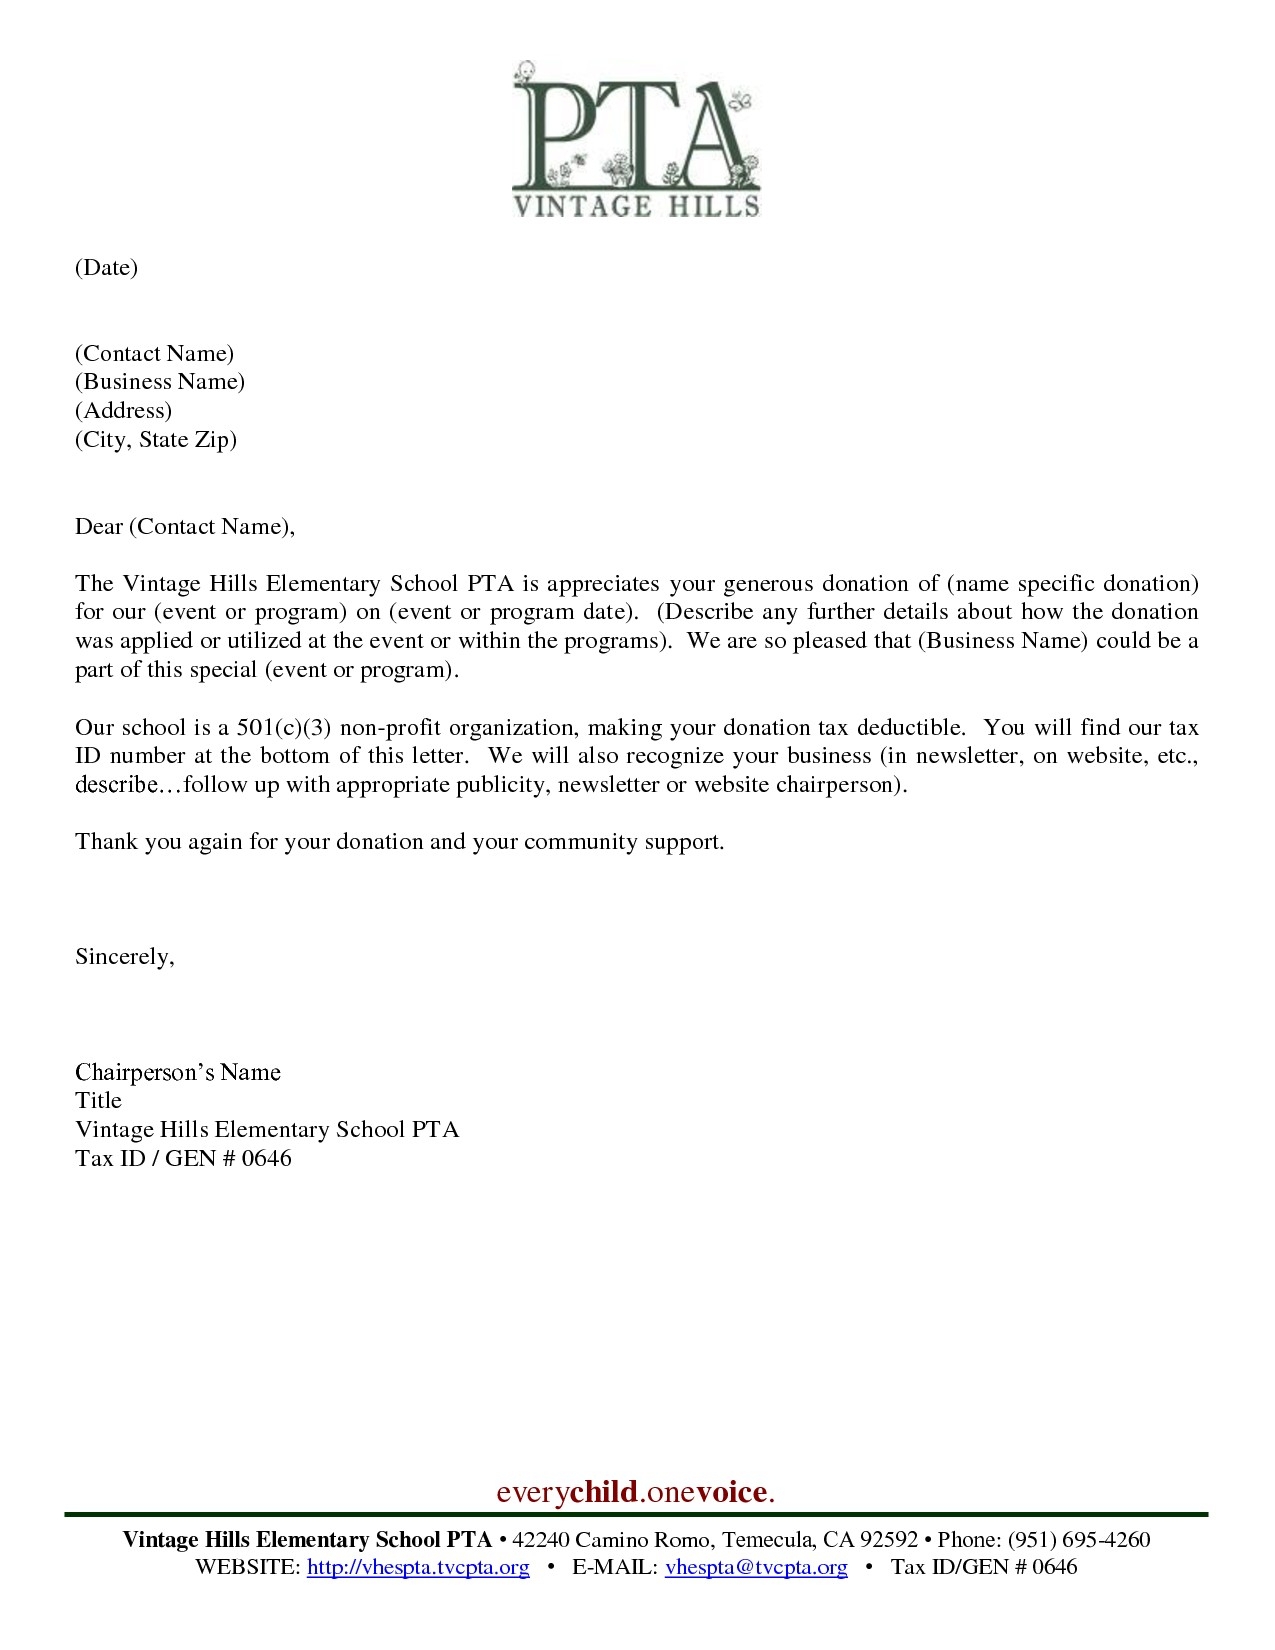 Fundraising Letter Template Non Profit organizations - Business Donation Letter Template Best Donor Thank You Letter Sample